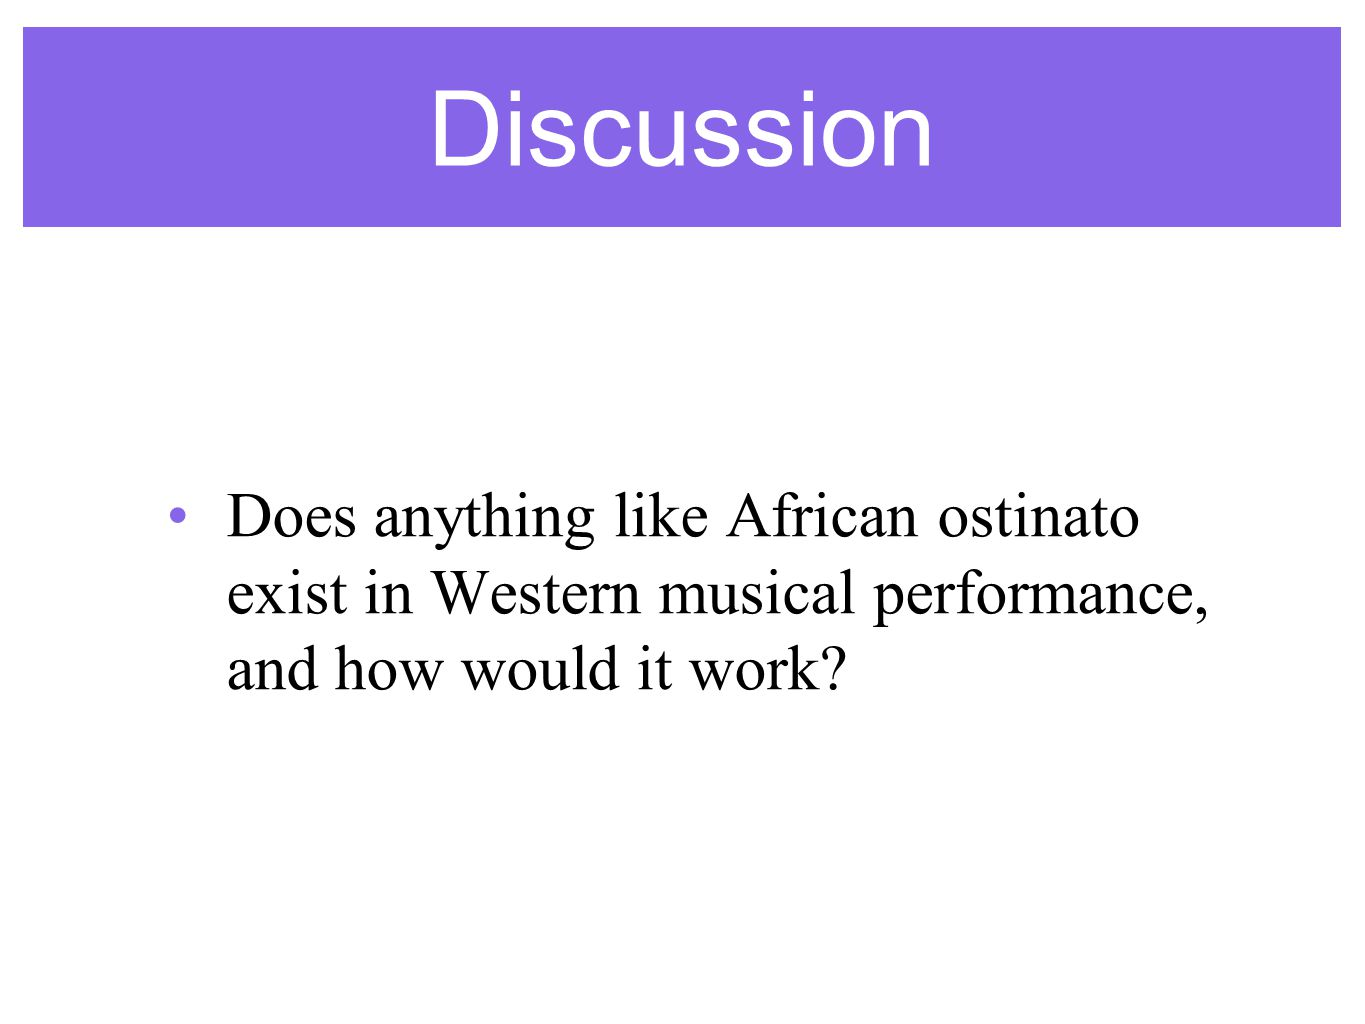 Discussion Does anything like African ostinato exist in Western musical performance, and how would it work